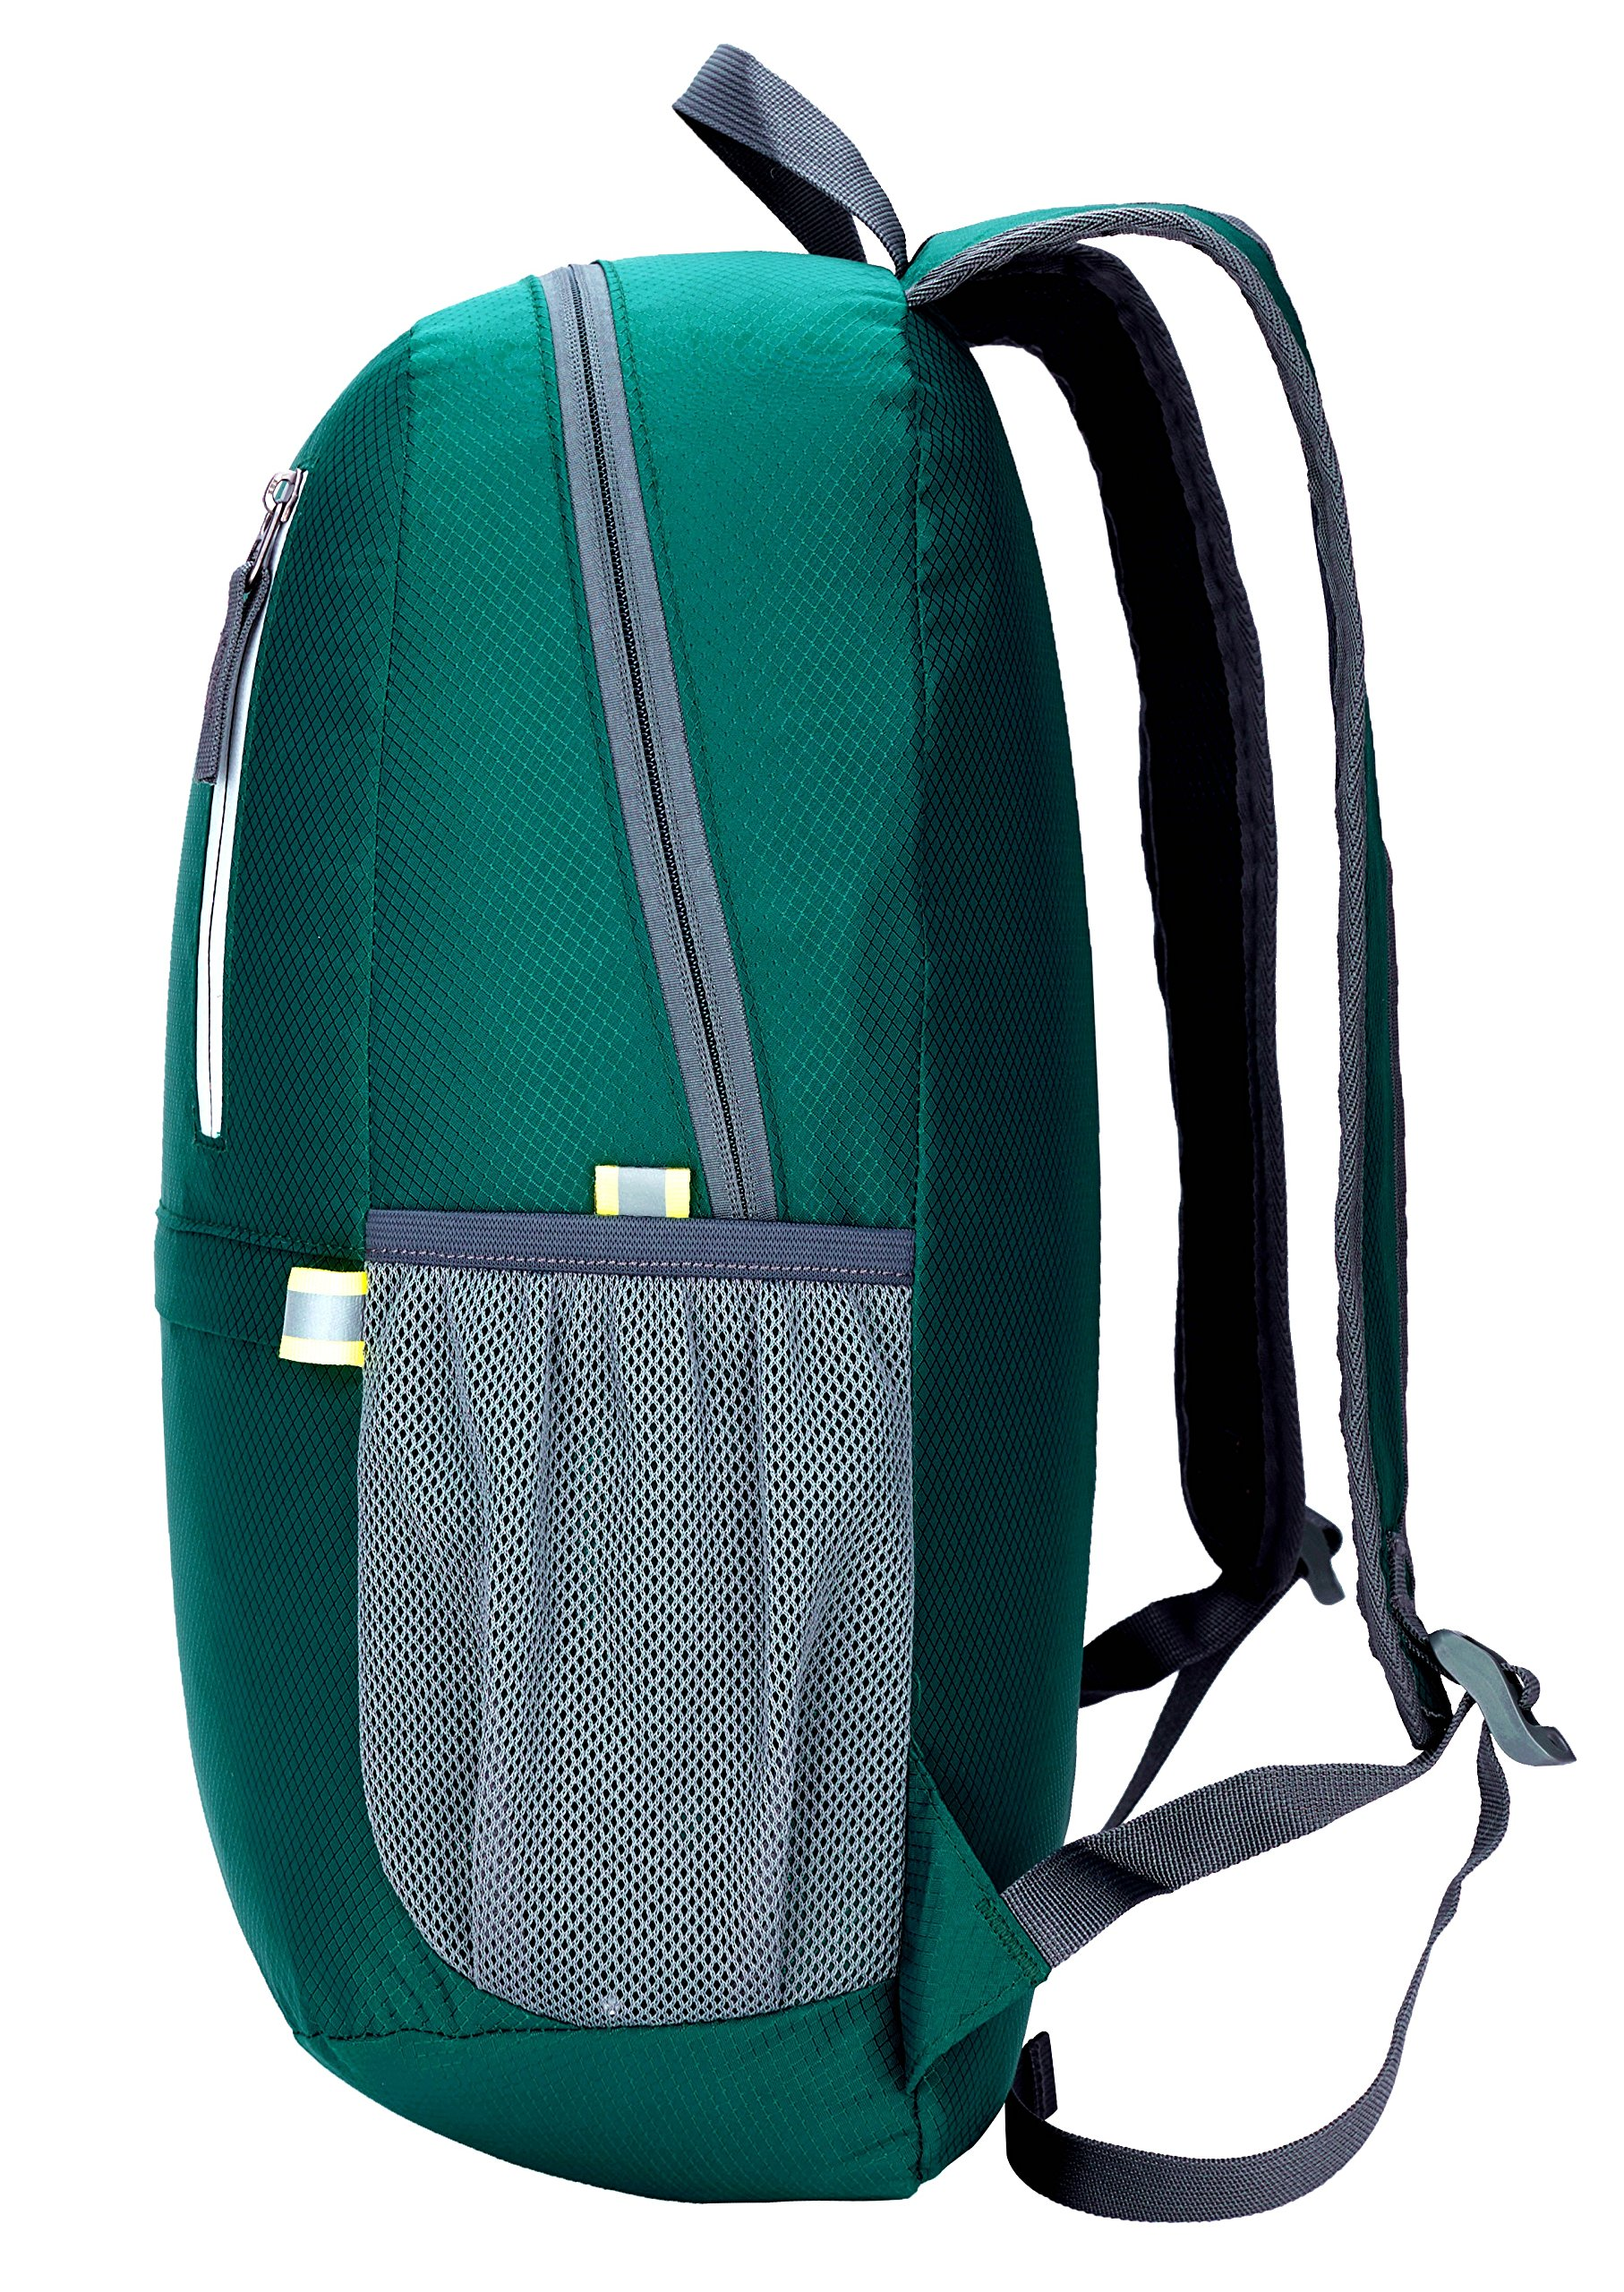 Venture Pal 25L Travel Backpack - Durable Packable Lightweight Small Backpack Women Men (Green) … by Venture Pal (Image #4)